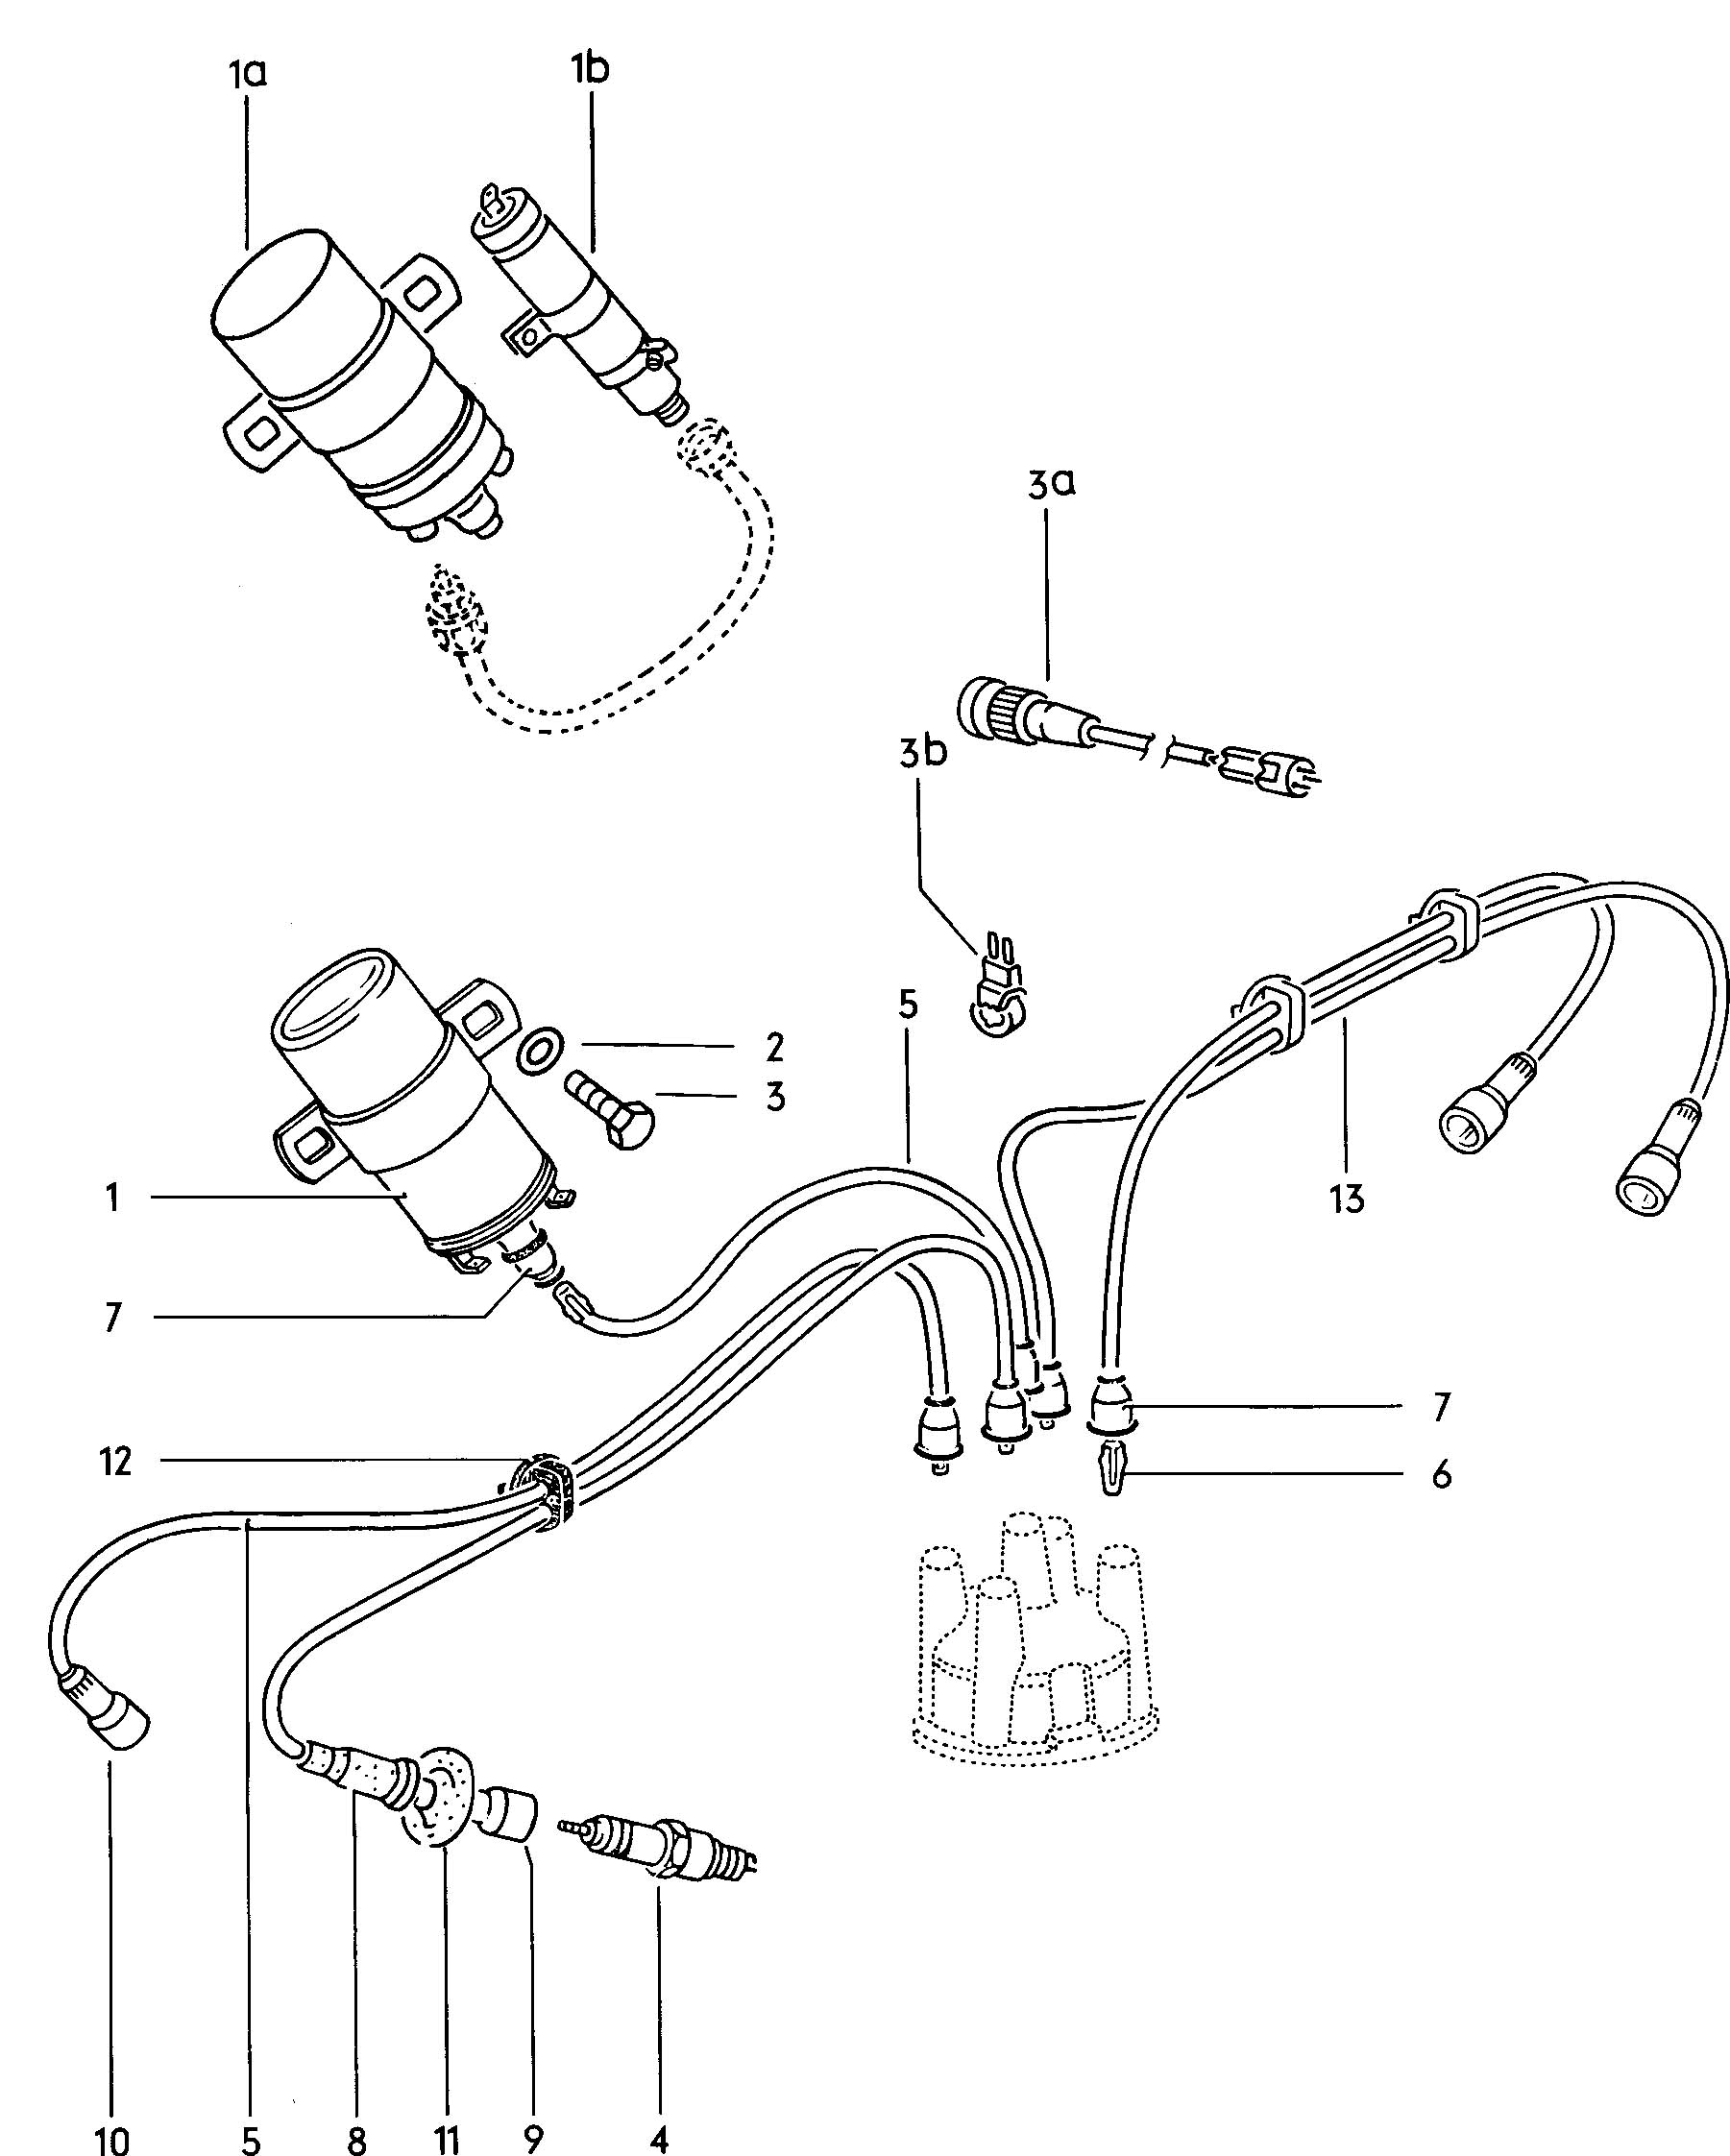 Vw Distributor Diagram Getting Ready With Wiring As Well Electrical Diagrams Chevrolet Cars 1600 Ignition Coil Get Free Image 1972 Beetle